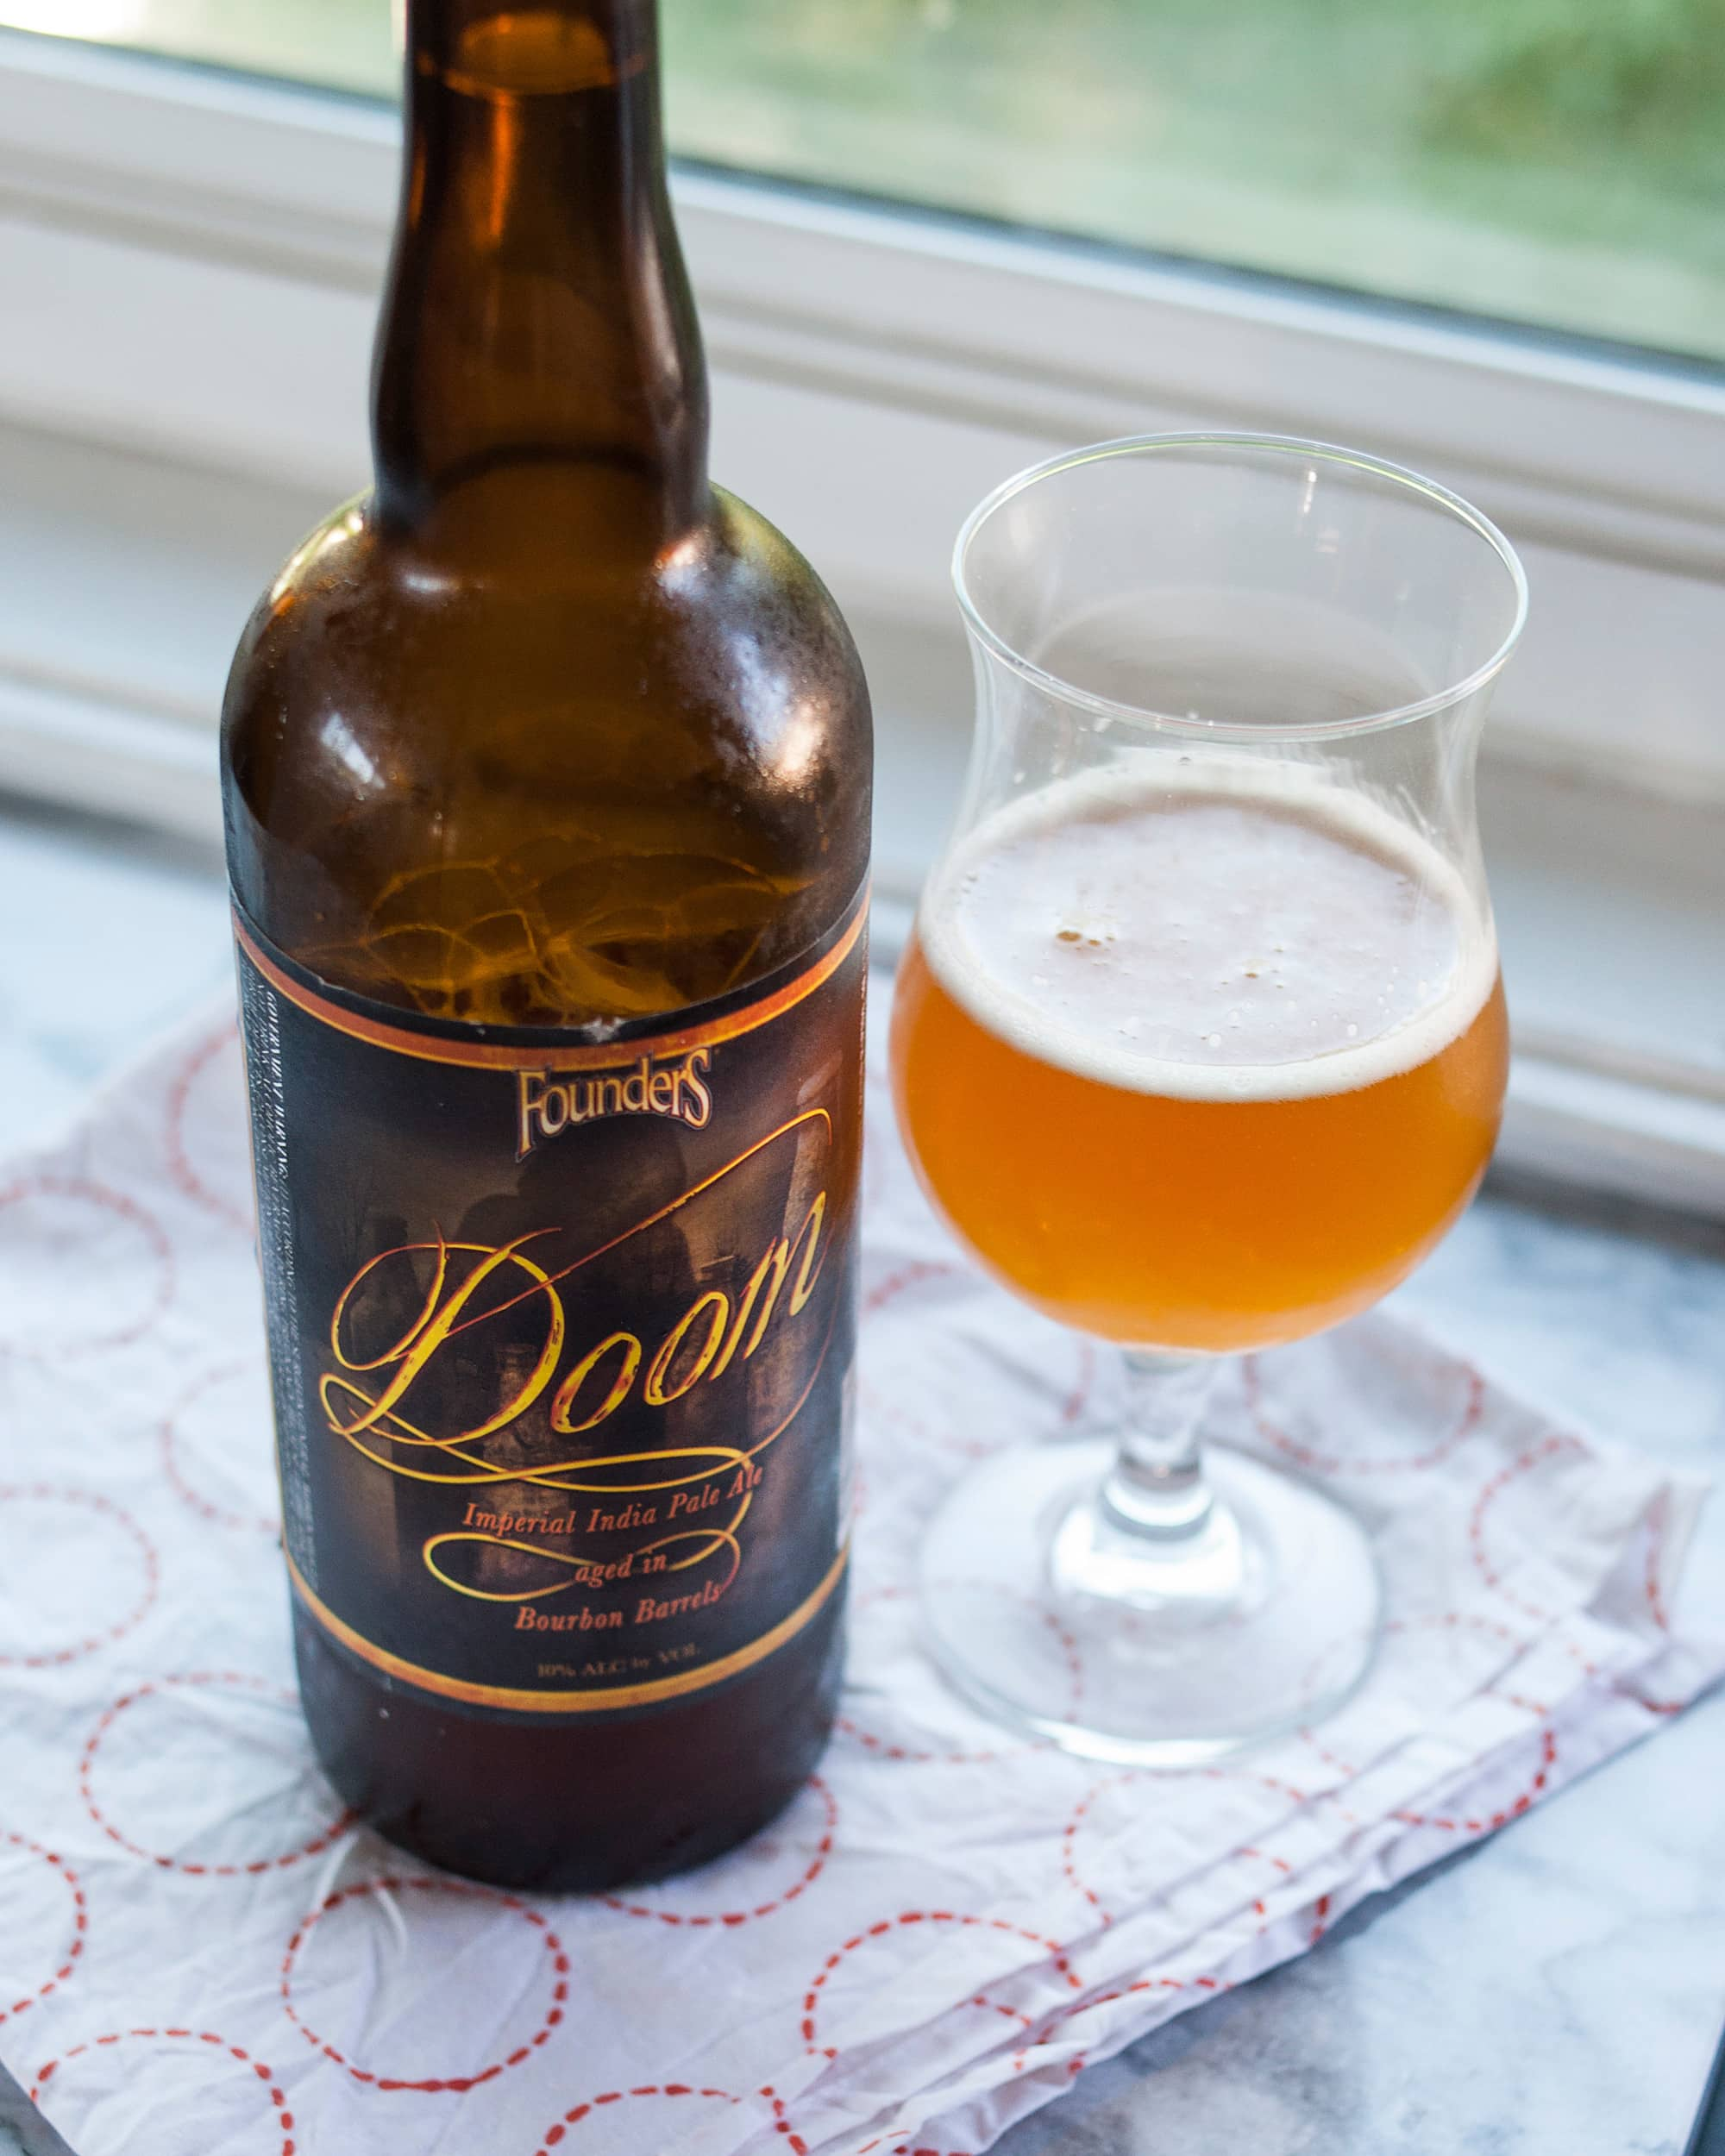 Beer Review: Doom from Founders Brewing Co.